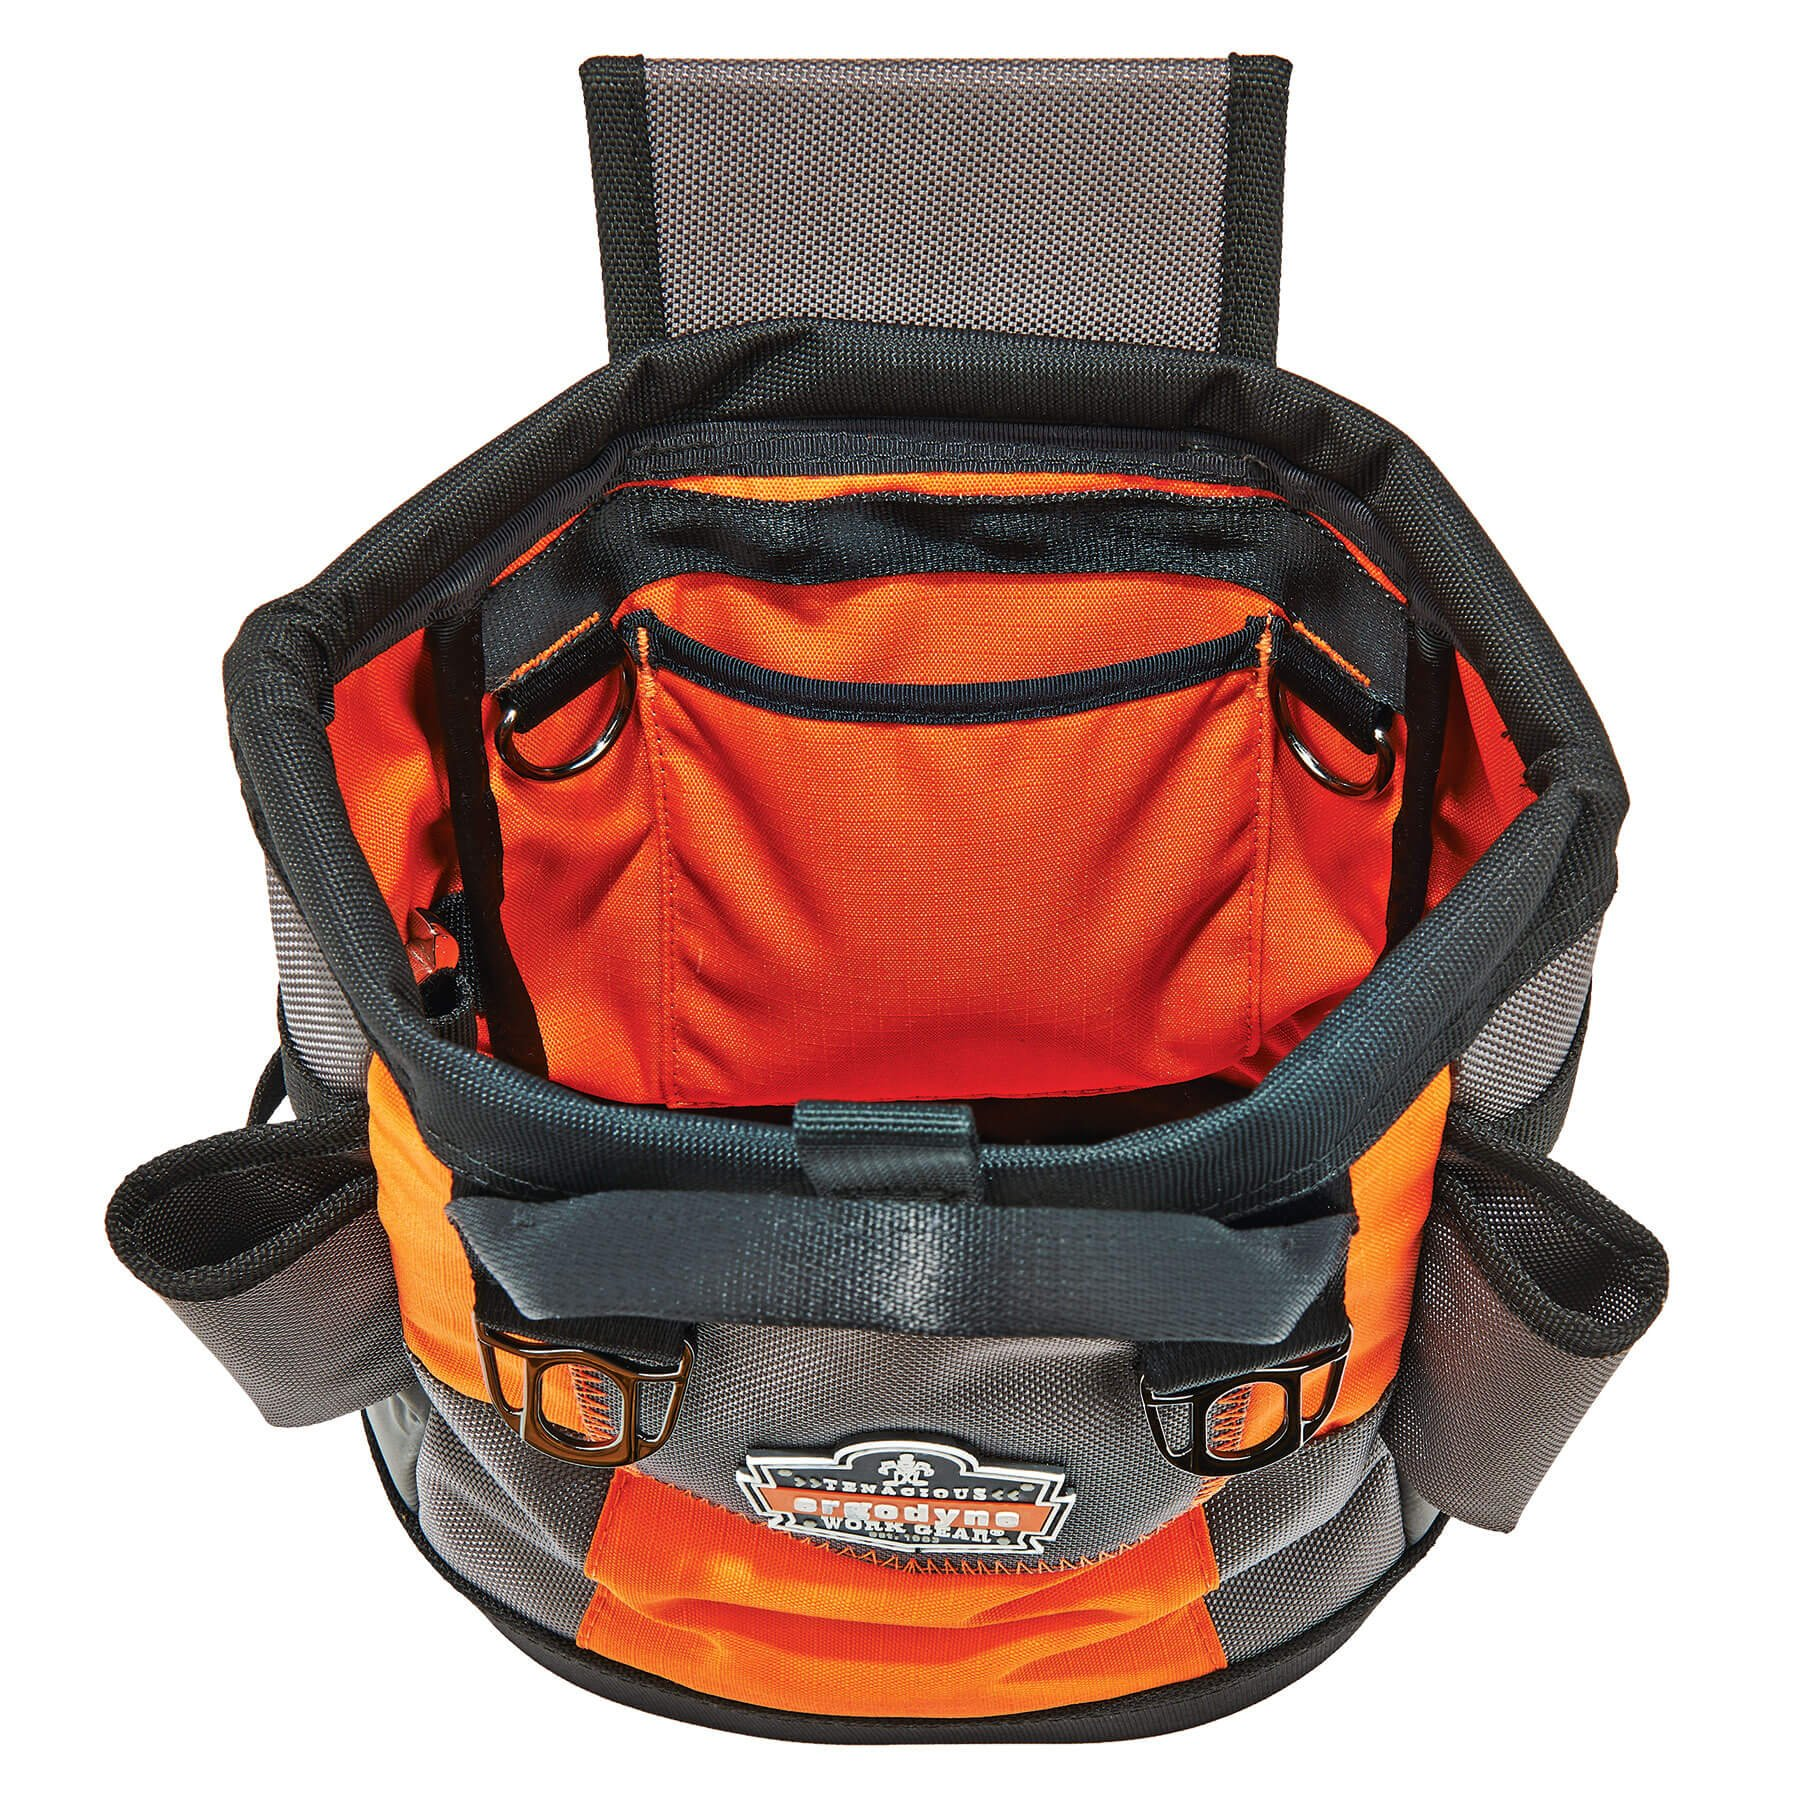 Ergodyne Arsenal 5527 Topped Tool Pouch with Snap-Hinge Closure, One Size, Black by Ergodyne (Image #5)